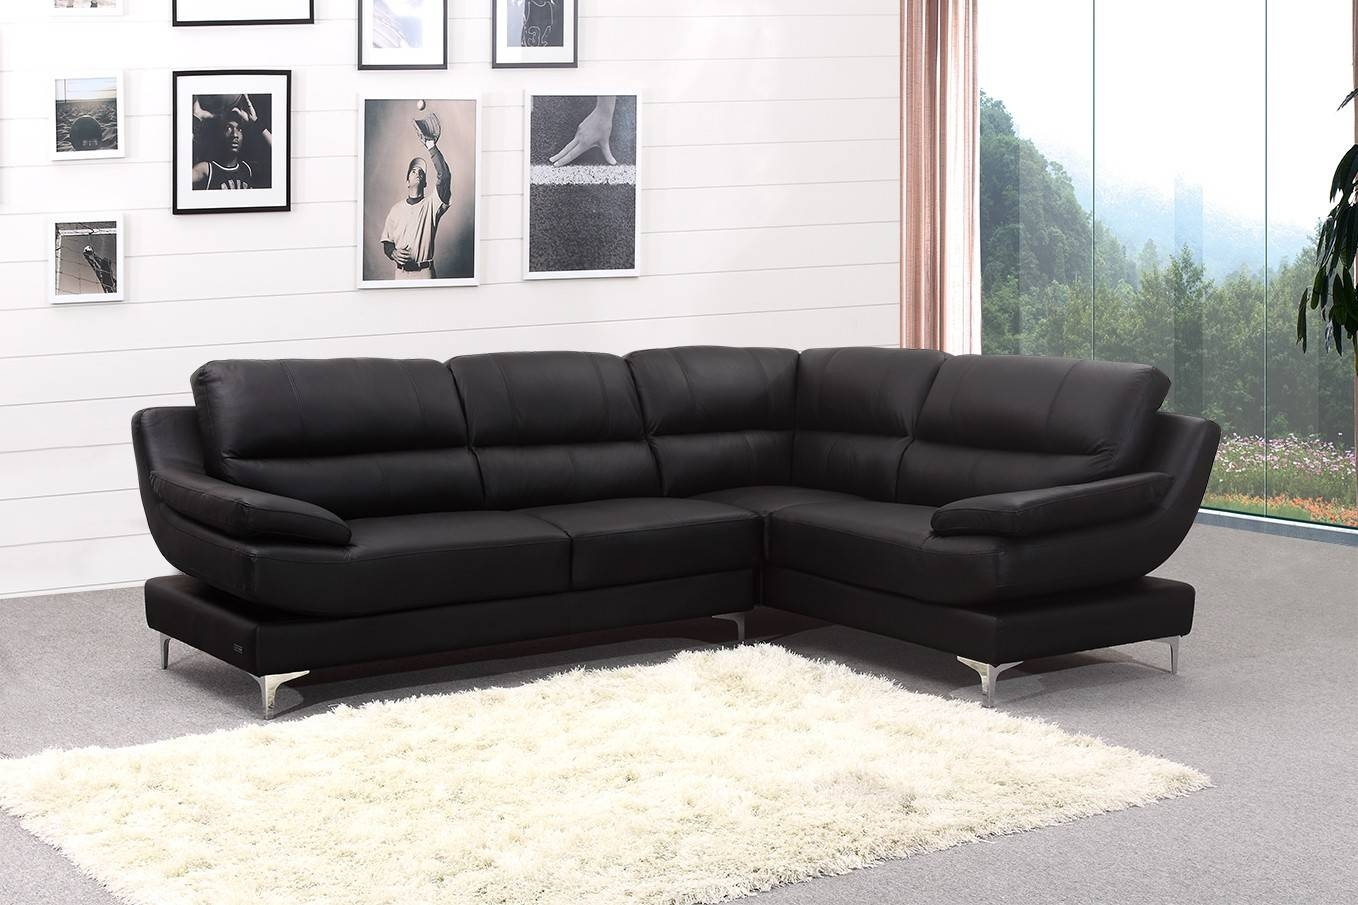 Stylish Leather Corner Sofa Cheap Leather Corner Sofa For Sale with Cheap Corner Sofa (Image 29 of 30)